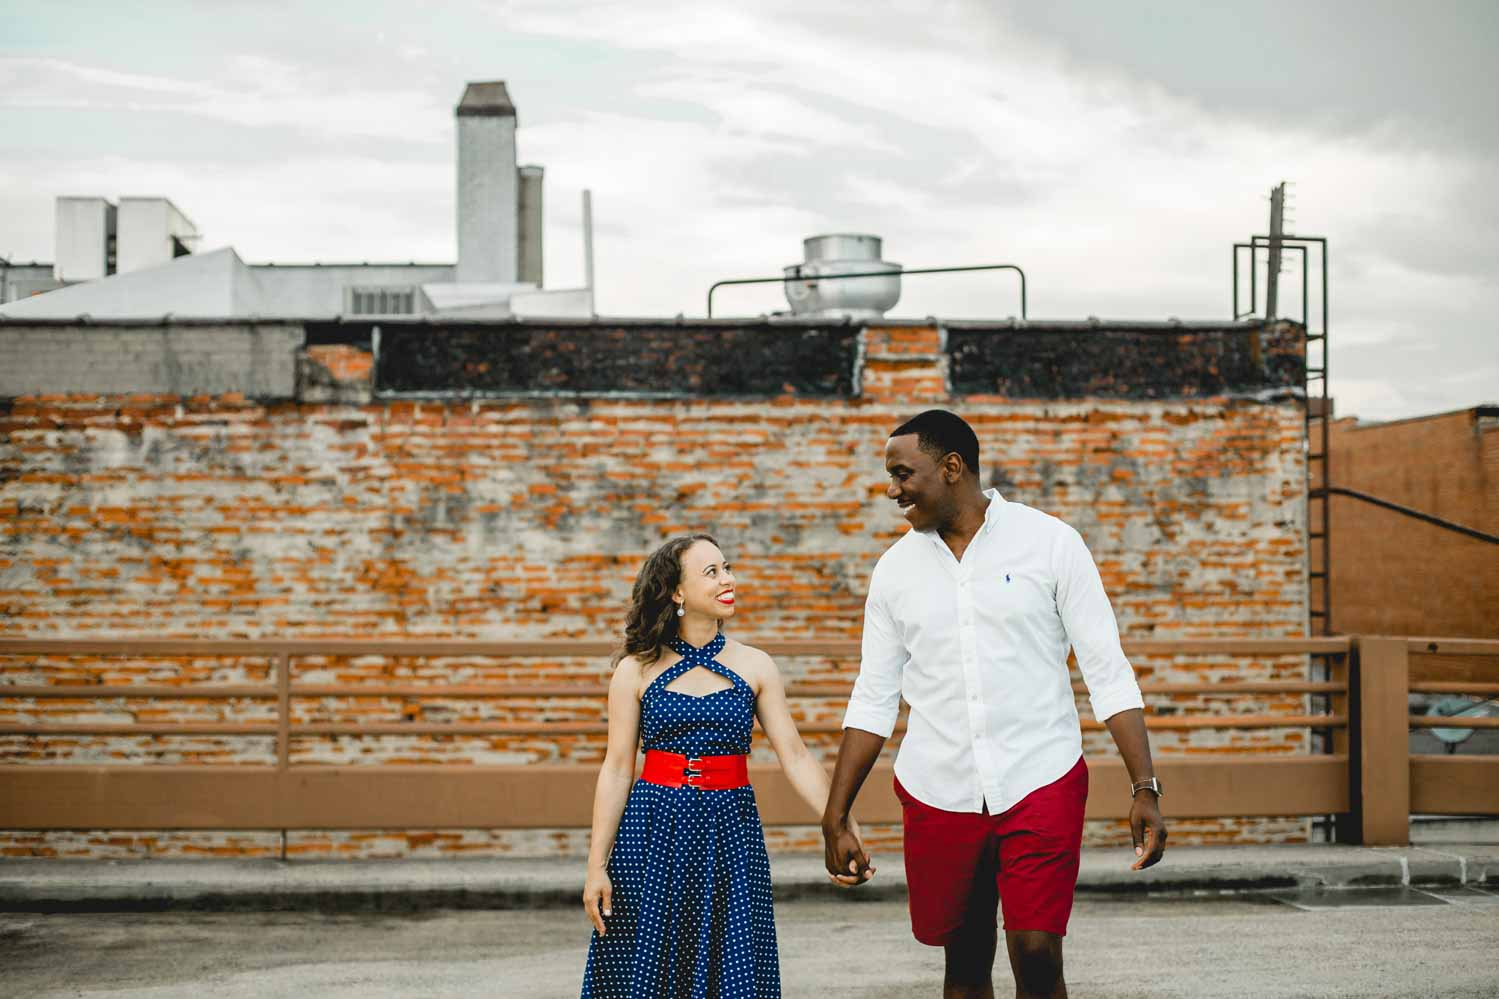 engagement-shoot-on-parking-deck-in-durham-nc